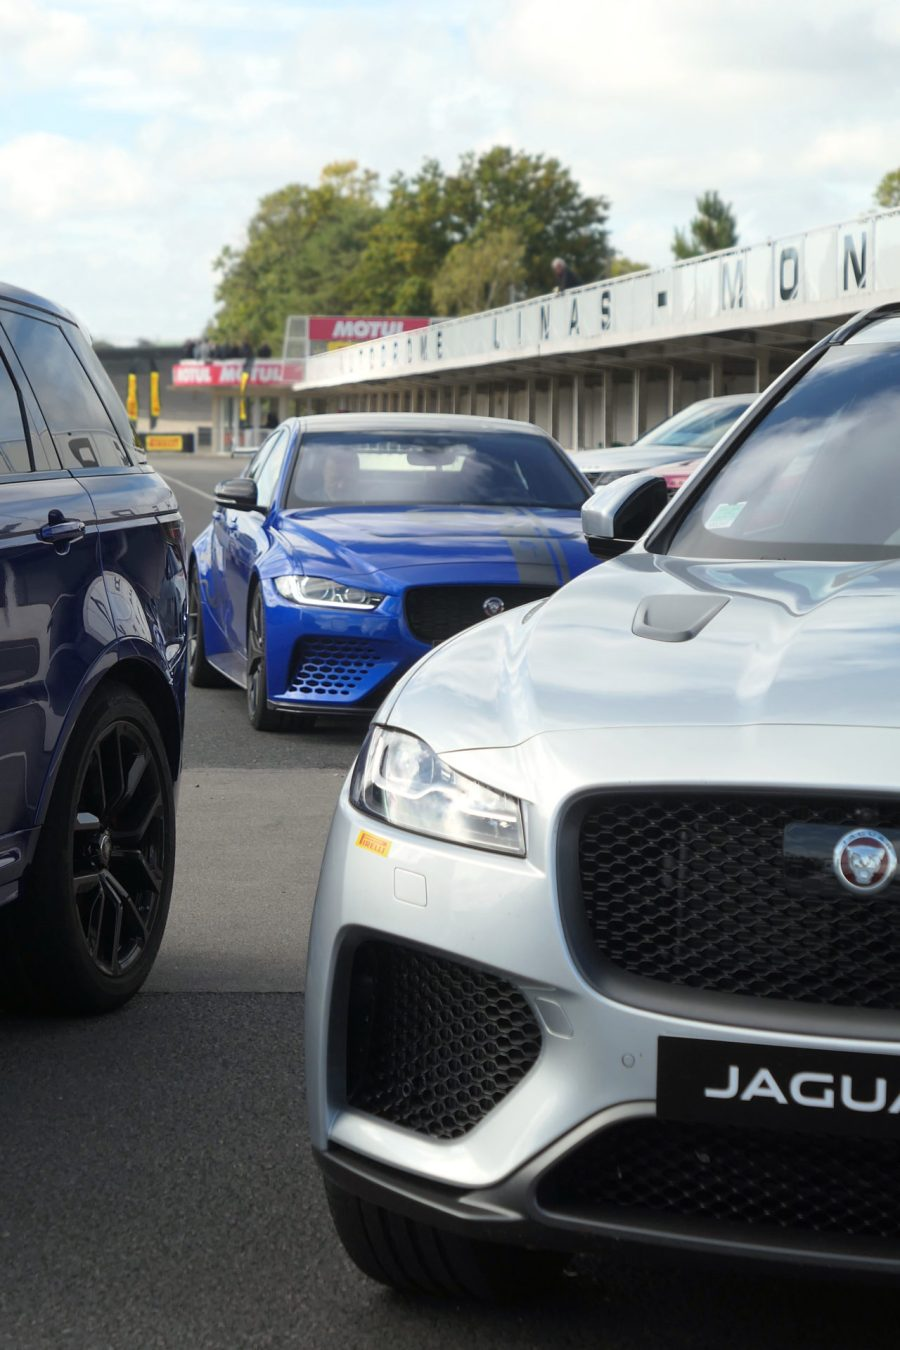 jaguar land rover festival jlr festival jaguar XE SV Project 8 roadrugcars Road Rug cars